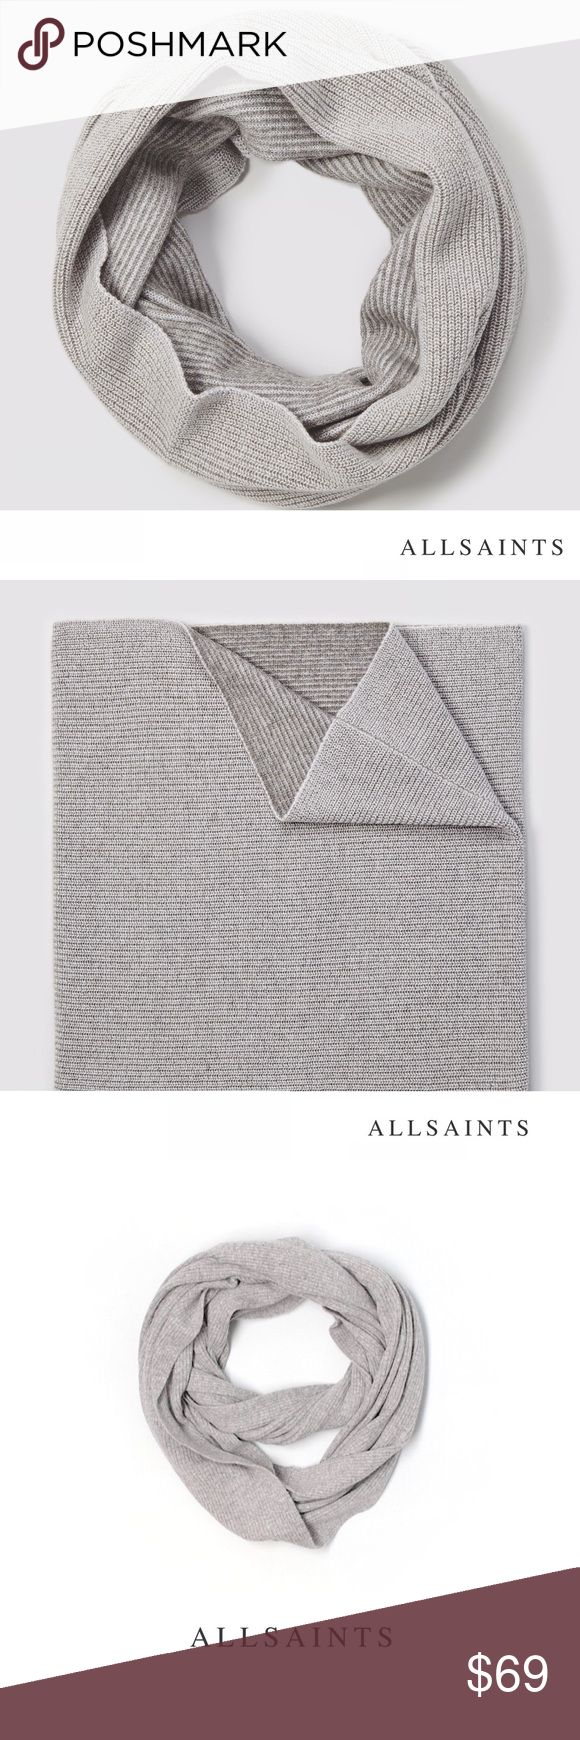 AllSaints Coxon Snood Wool Cashmere Infinity Scarf Stunning heather gray shade with a smart, minimalist look. Wool/Cashmere blend. Never worn. BNWT. No trades All Saints Accessories Scarves & Wraps